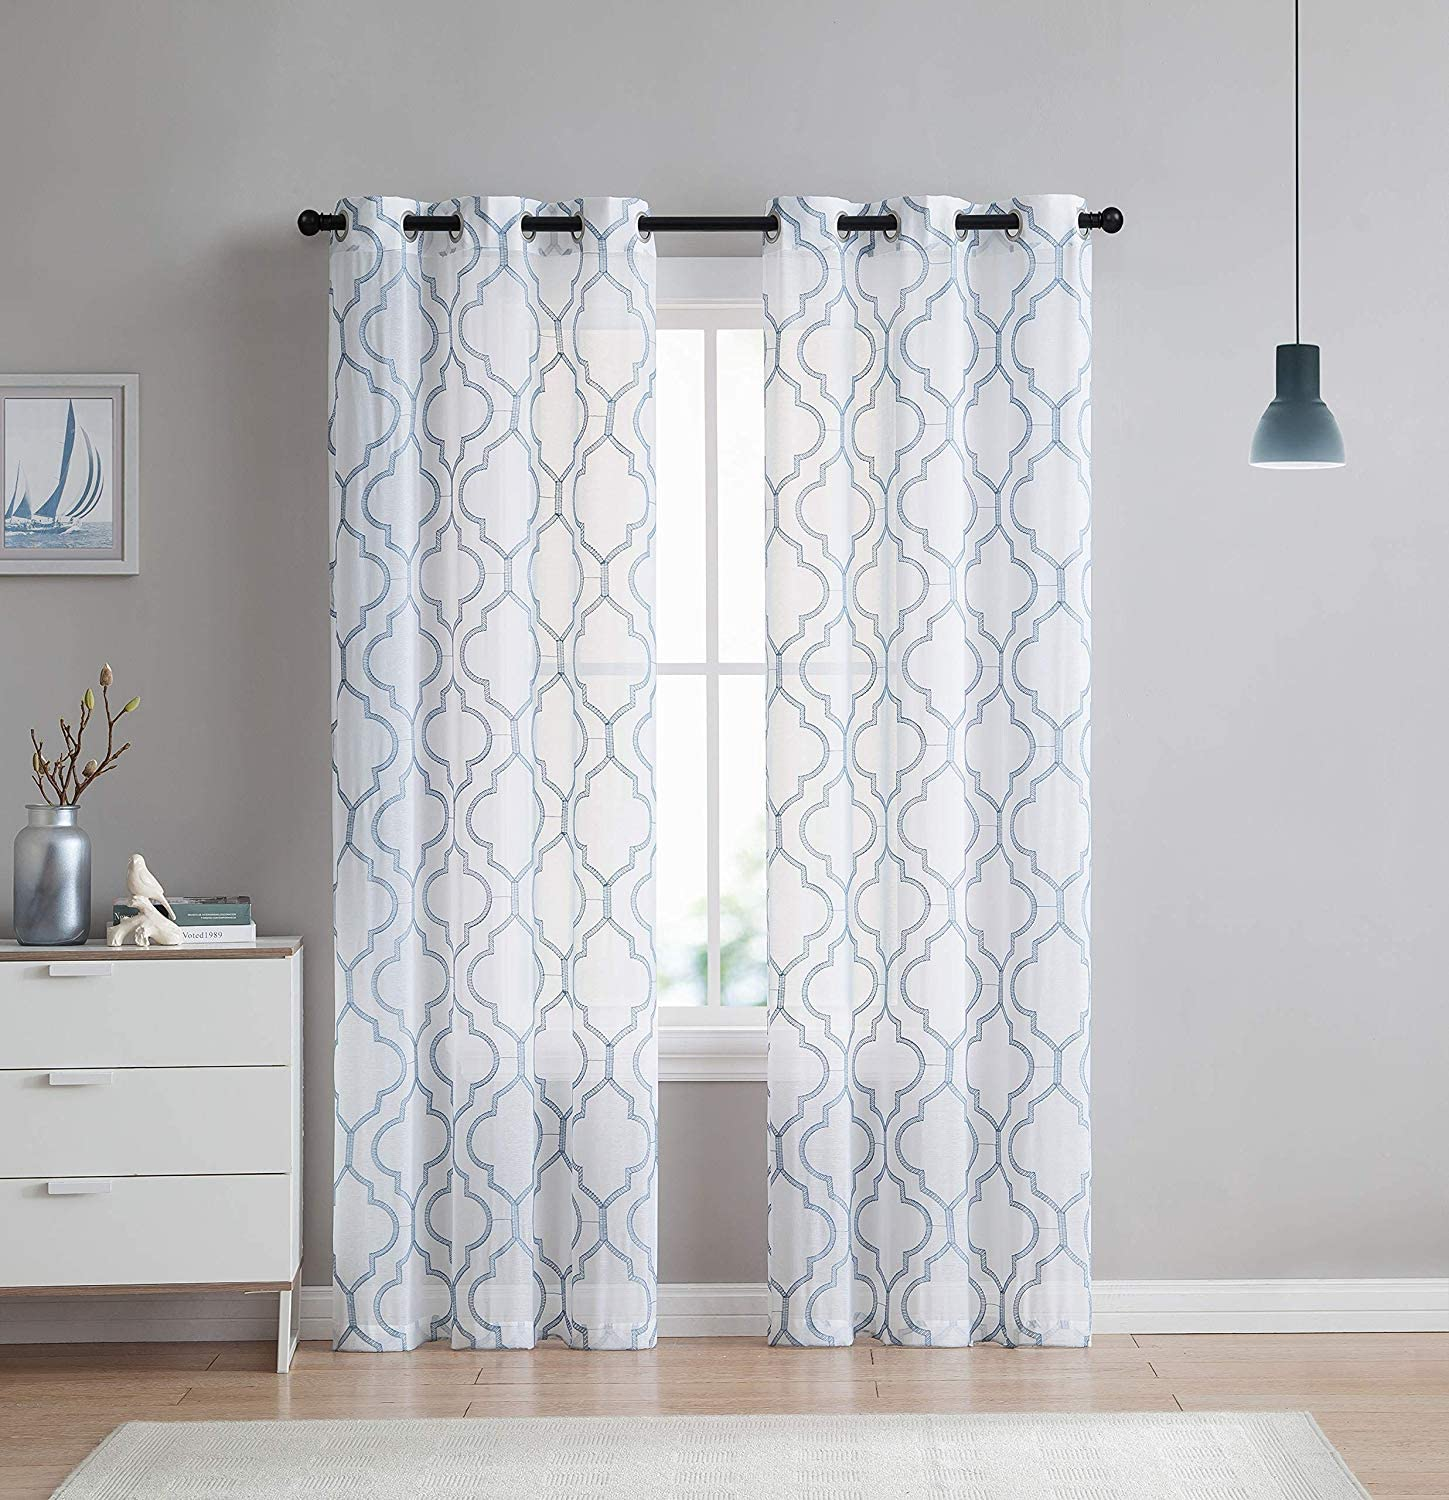 VCNY Home 2 Pack Charlotte Embroidered Quatrefoil Trellis Semi Sheer Curtain Panels - Assorted Colors & Sizes (84 in. Length, Blue)